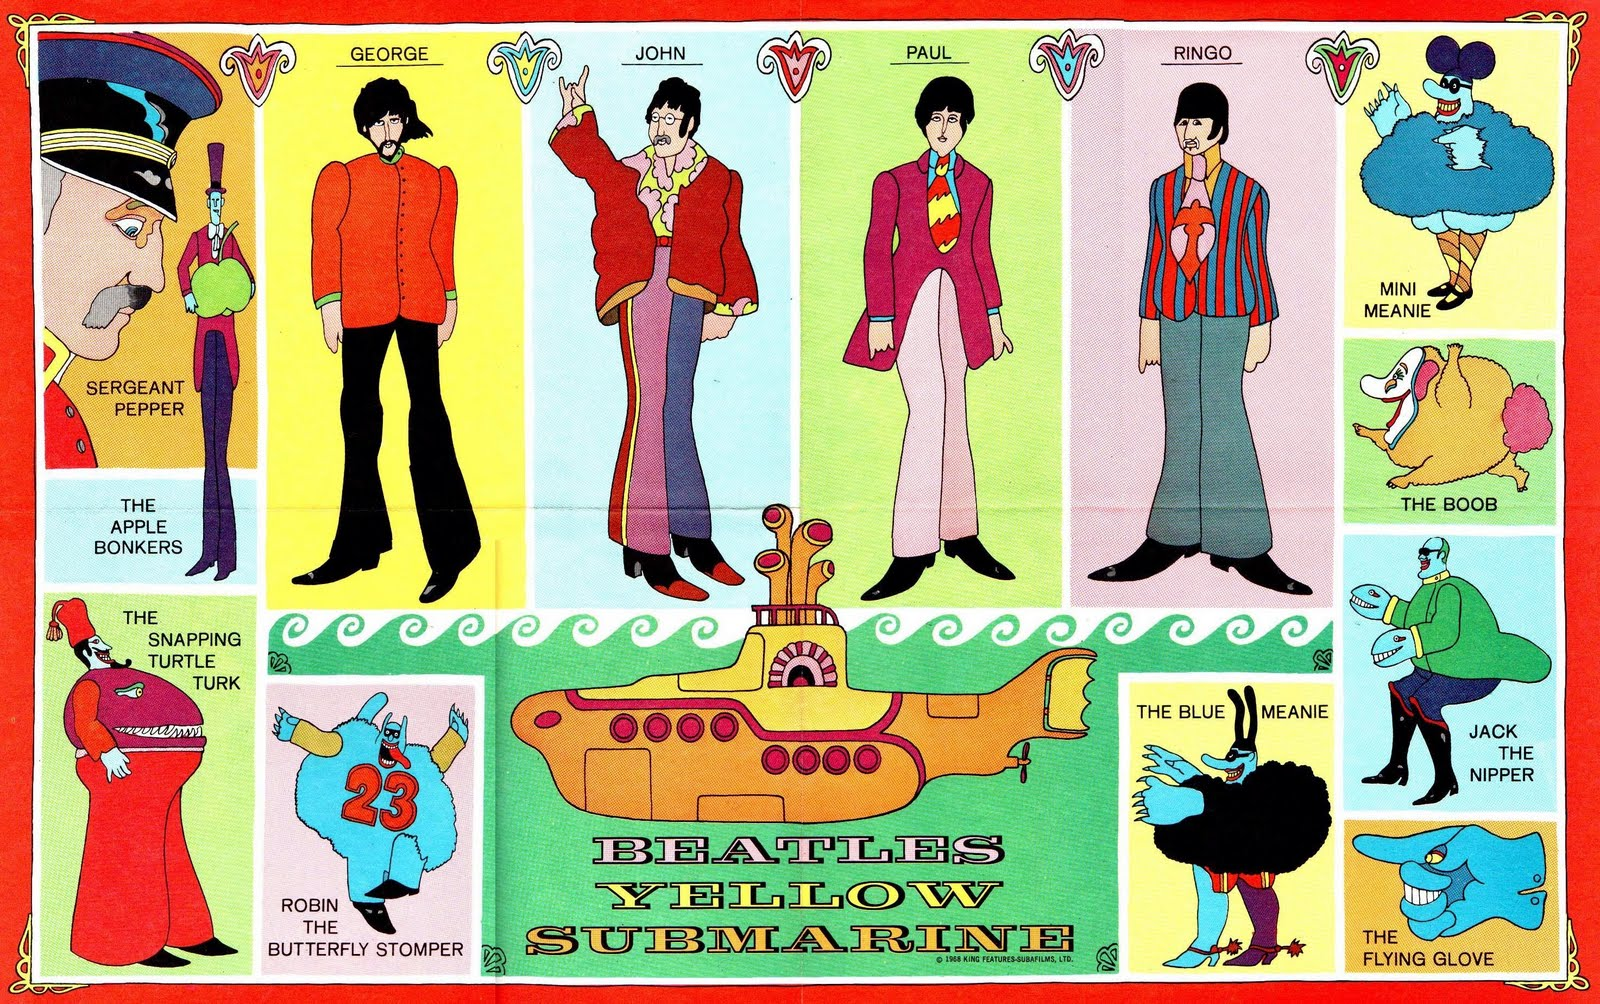 BEATLES YELLOW SUBMARINE COMIC POSTER - Trippy Stoner Films